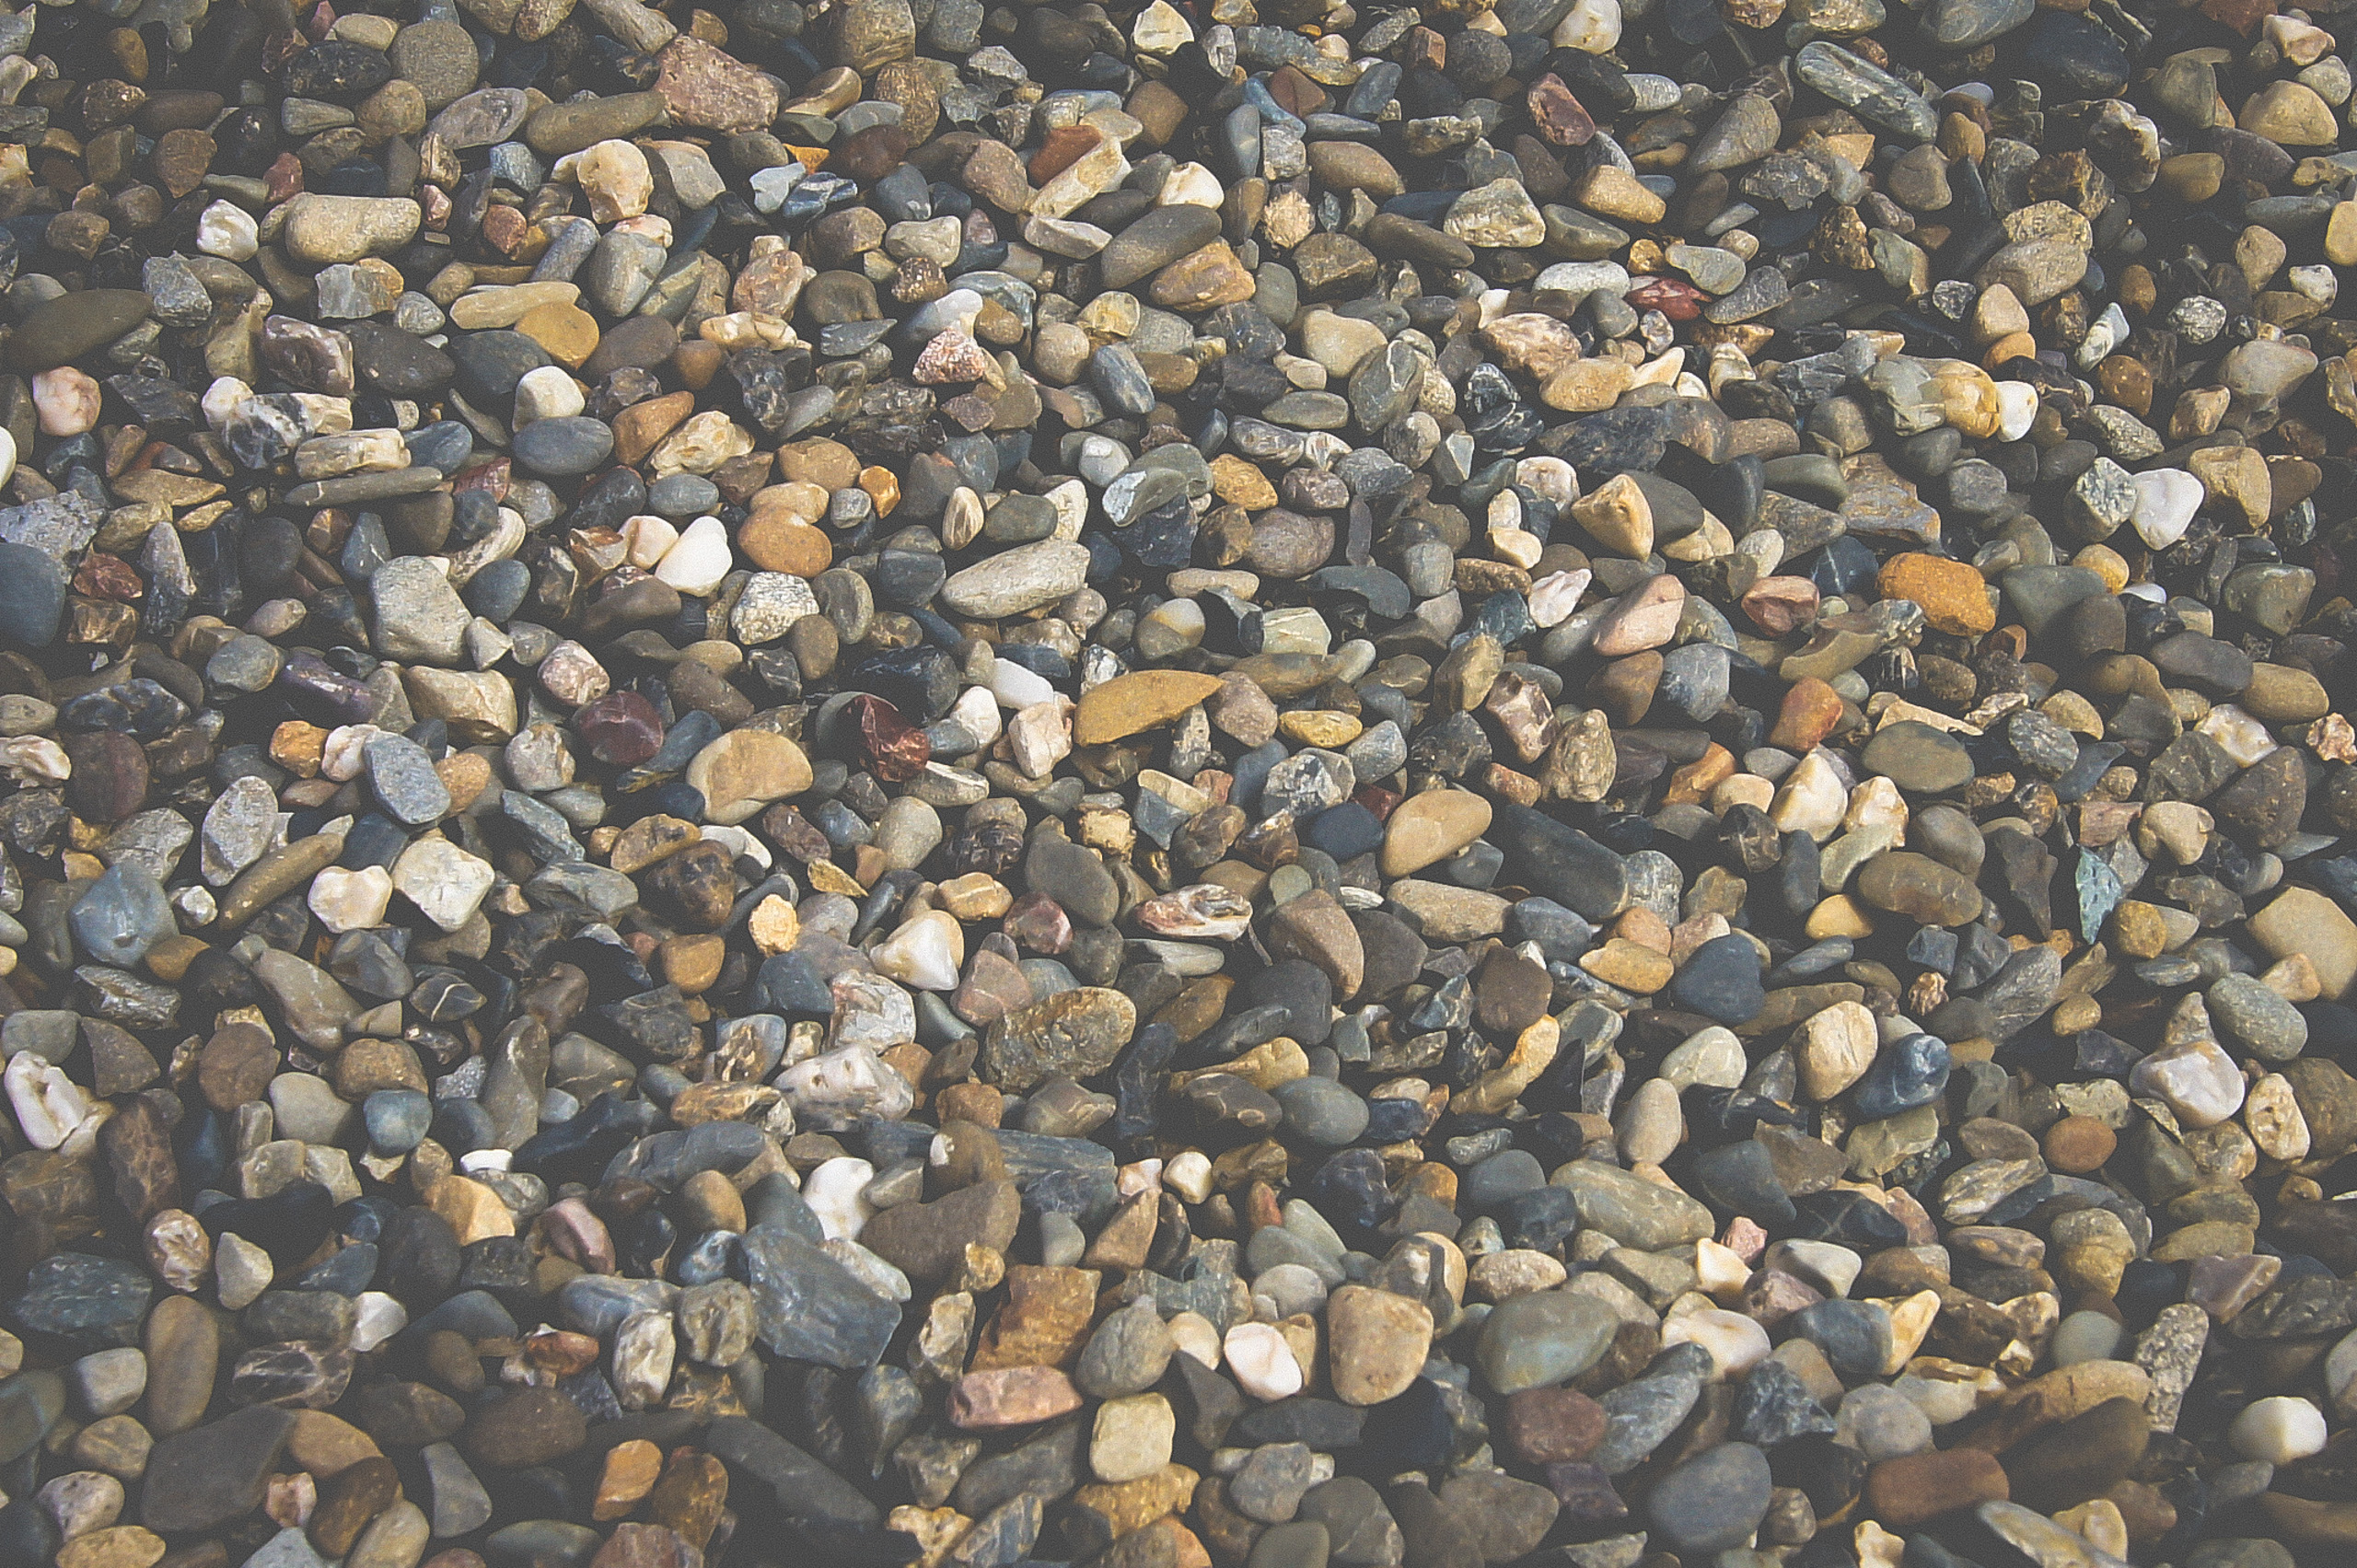 Grey River Pebble 10mm Closeup Landscape Supply Photography